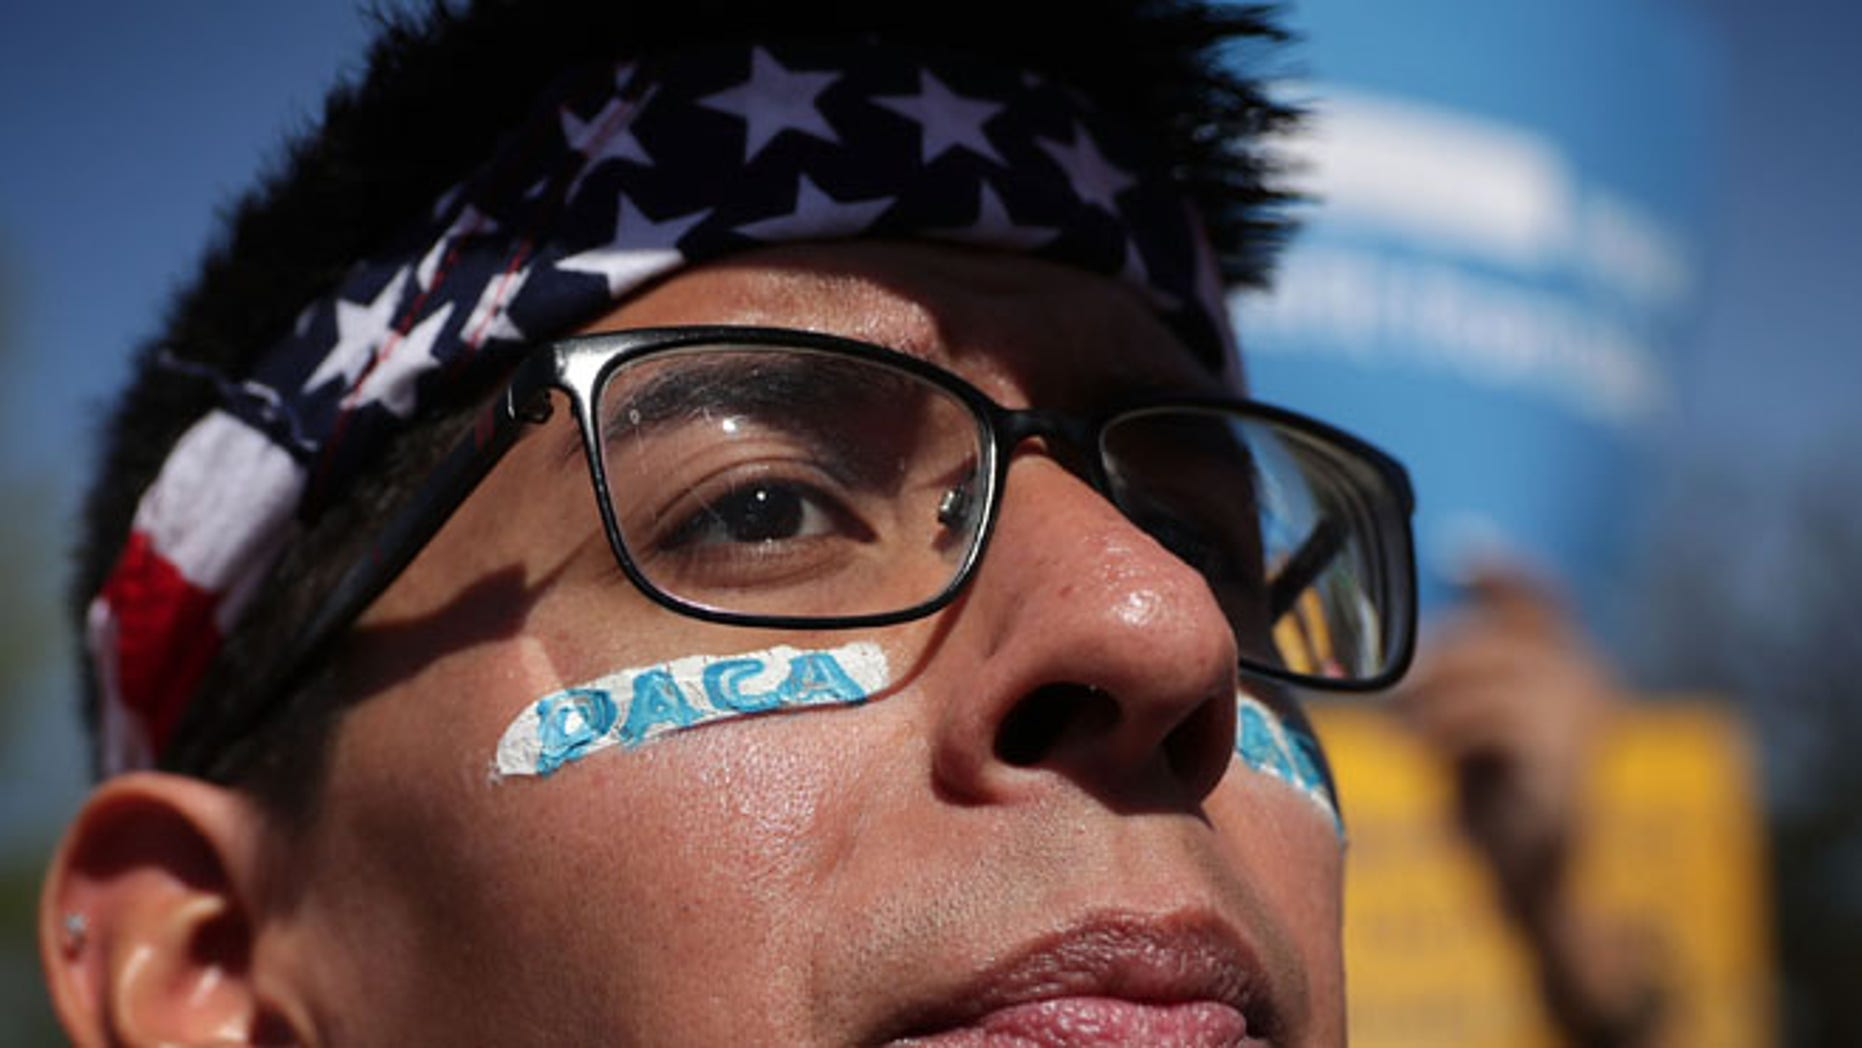 WASHINGTON, DC - APRIL 18:  Pro-immigration activist Omar Martinez attends a rally in front of the U.S. Supreme Court April 18, 2016 in Washington, DC. The Supreme is scheduled to hear oral arguments in the case of United States v. Texas, which is challenging President Obama's 2014 executive actions on immigration - the Deferred Action for Children Arrivals (DACA) and Deferred Action for Parents of American and Lawful Permanent Residents (DAPA) programs.  (Photo by Alex Wong/Getty Images)